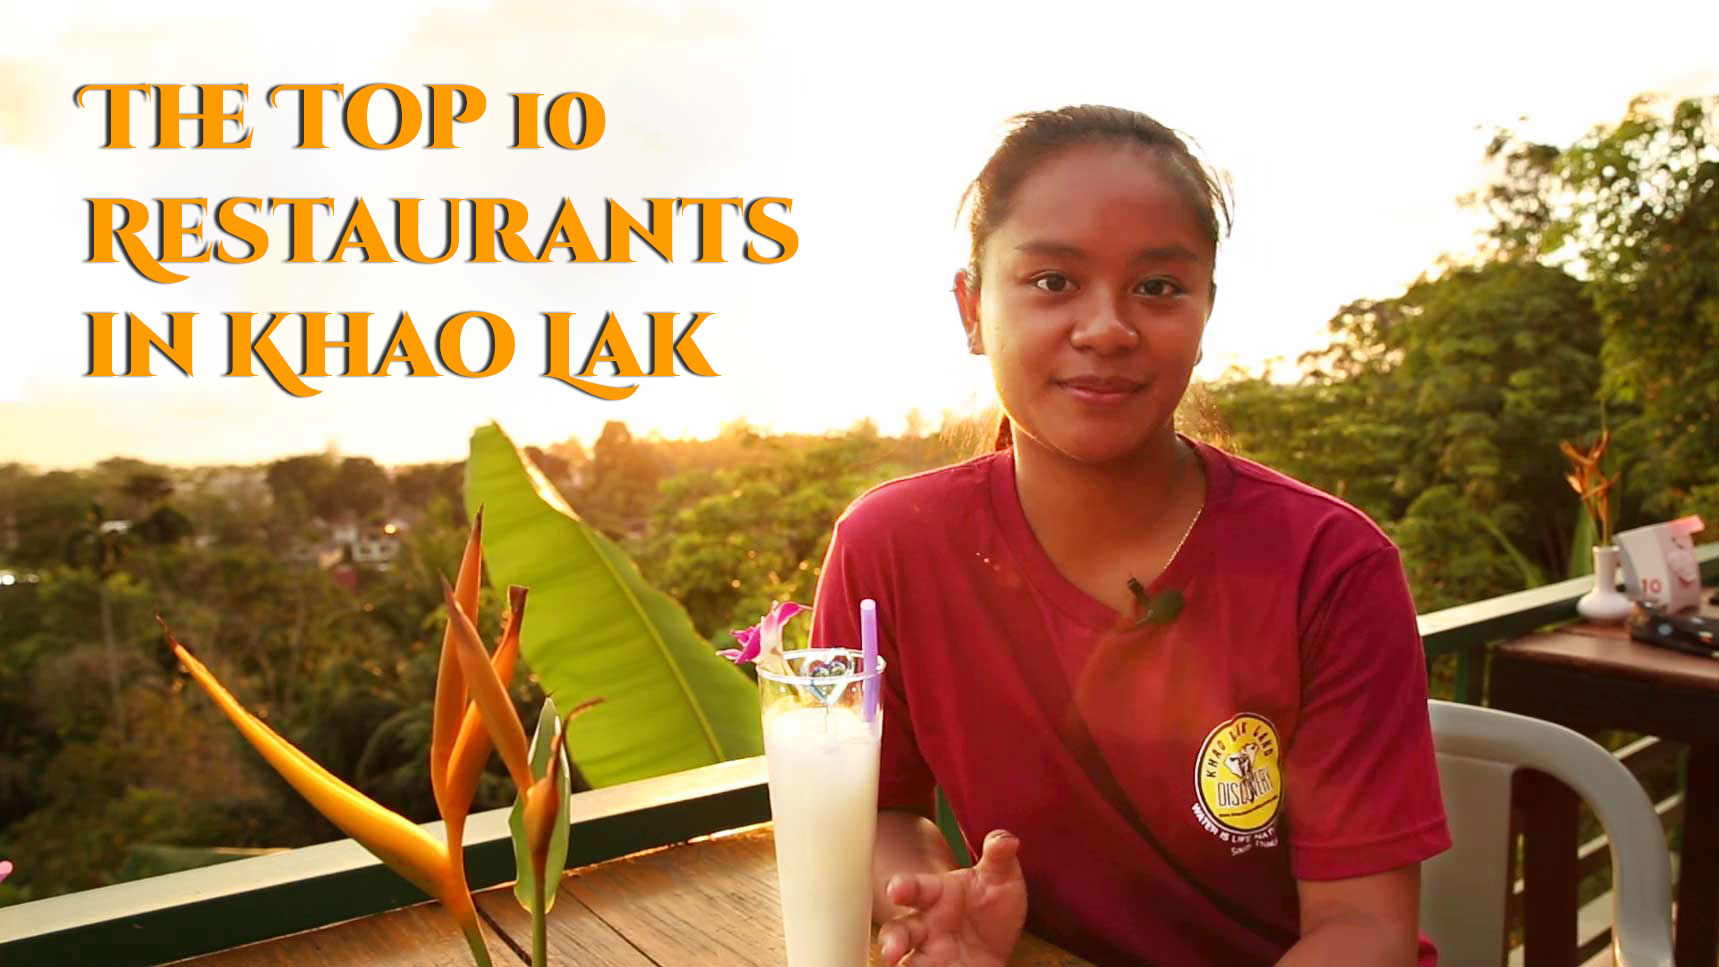 The Top 10 Restaurants in Khao Lak